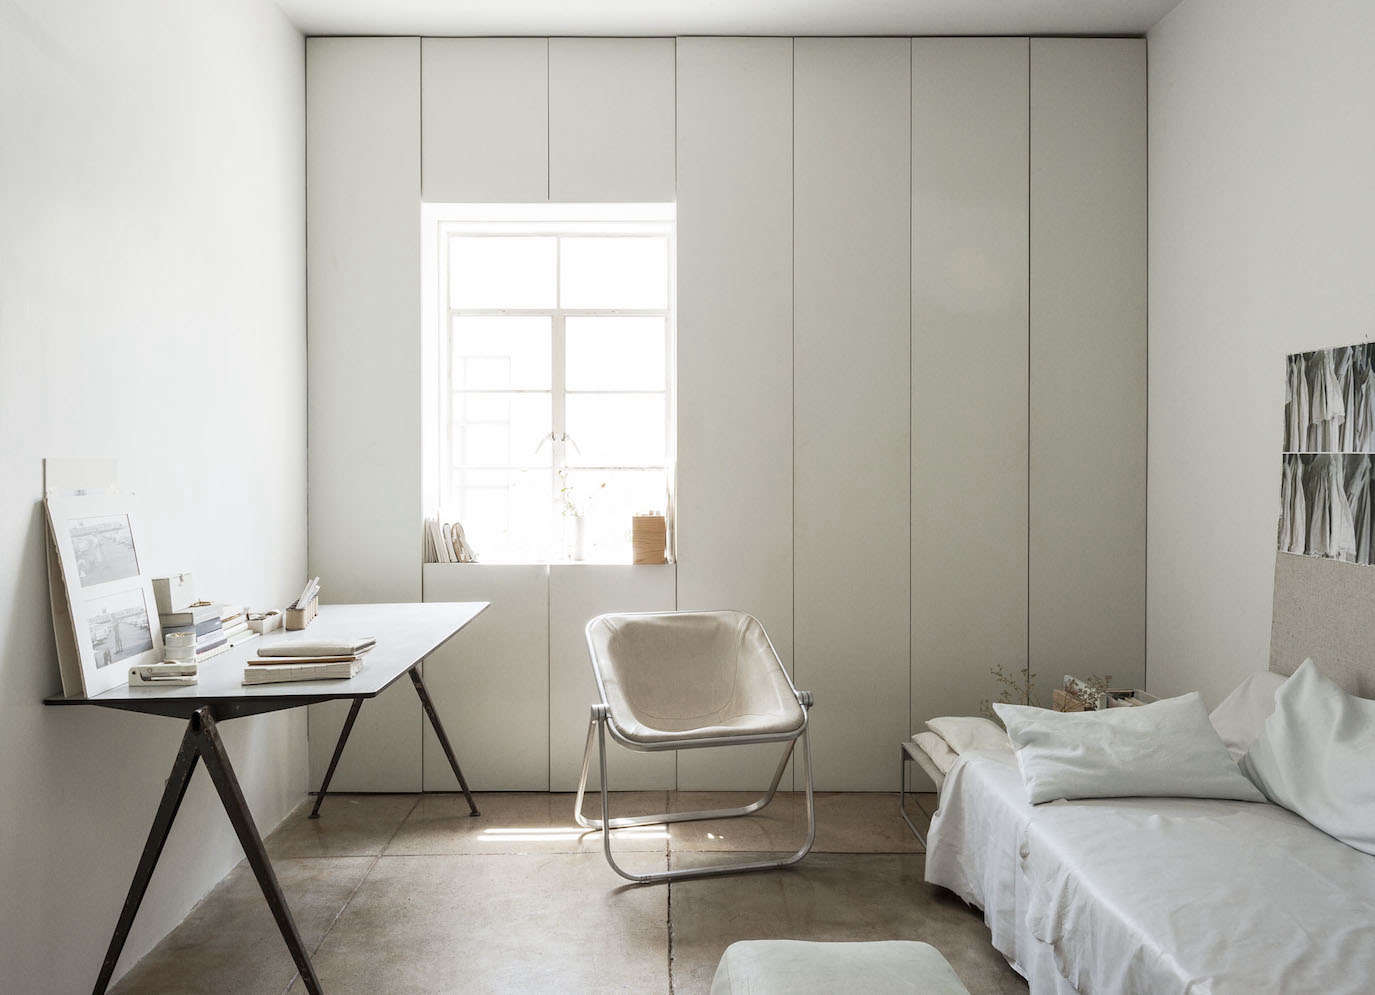 Rooms: World's Tiniest Spa Bath: A Grecian-Inspired Guest Suite